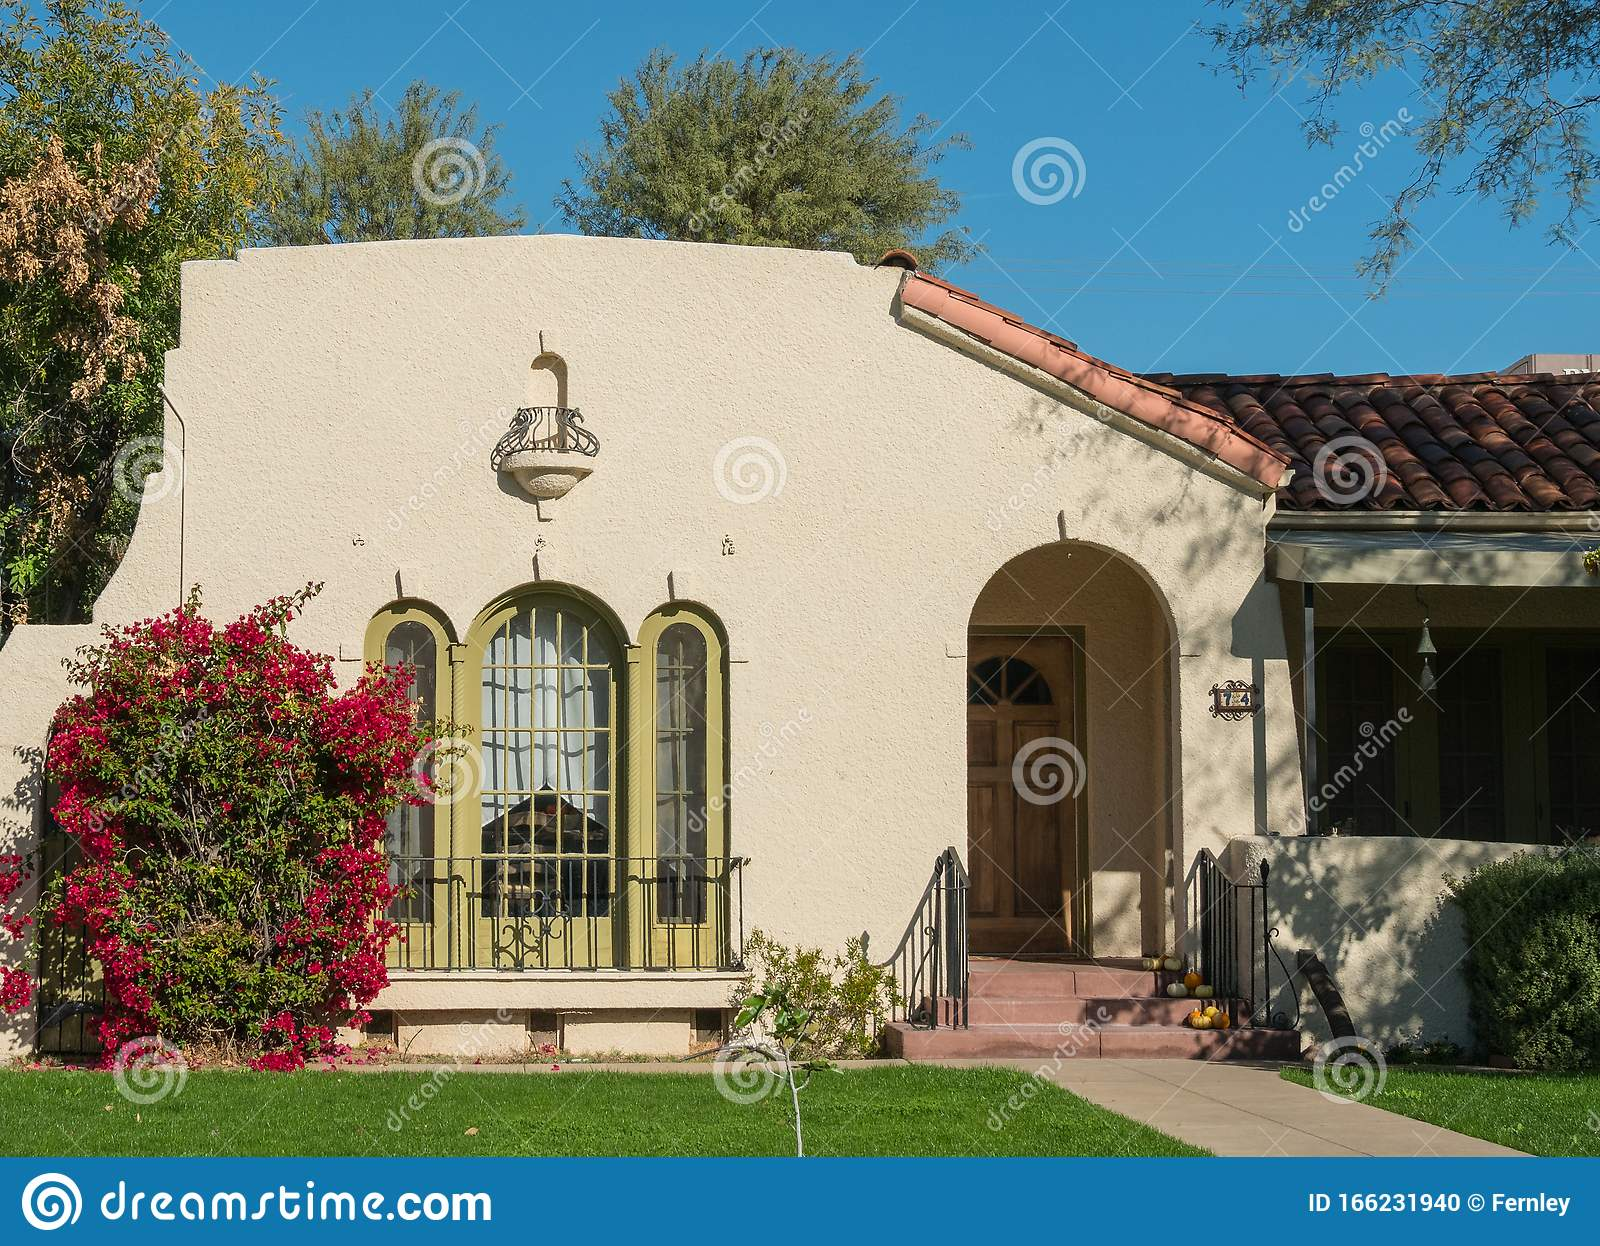 146 Spanish Bungalow Photos Free Royalty Free Stock Photos From Dreamstime